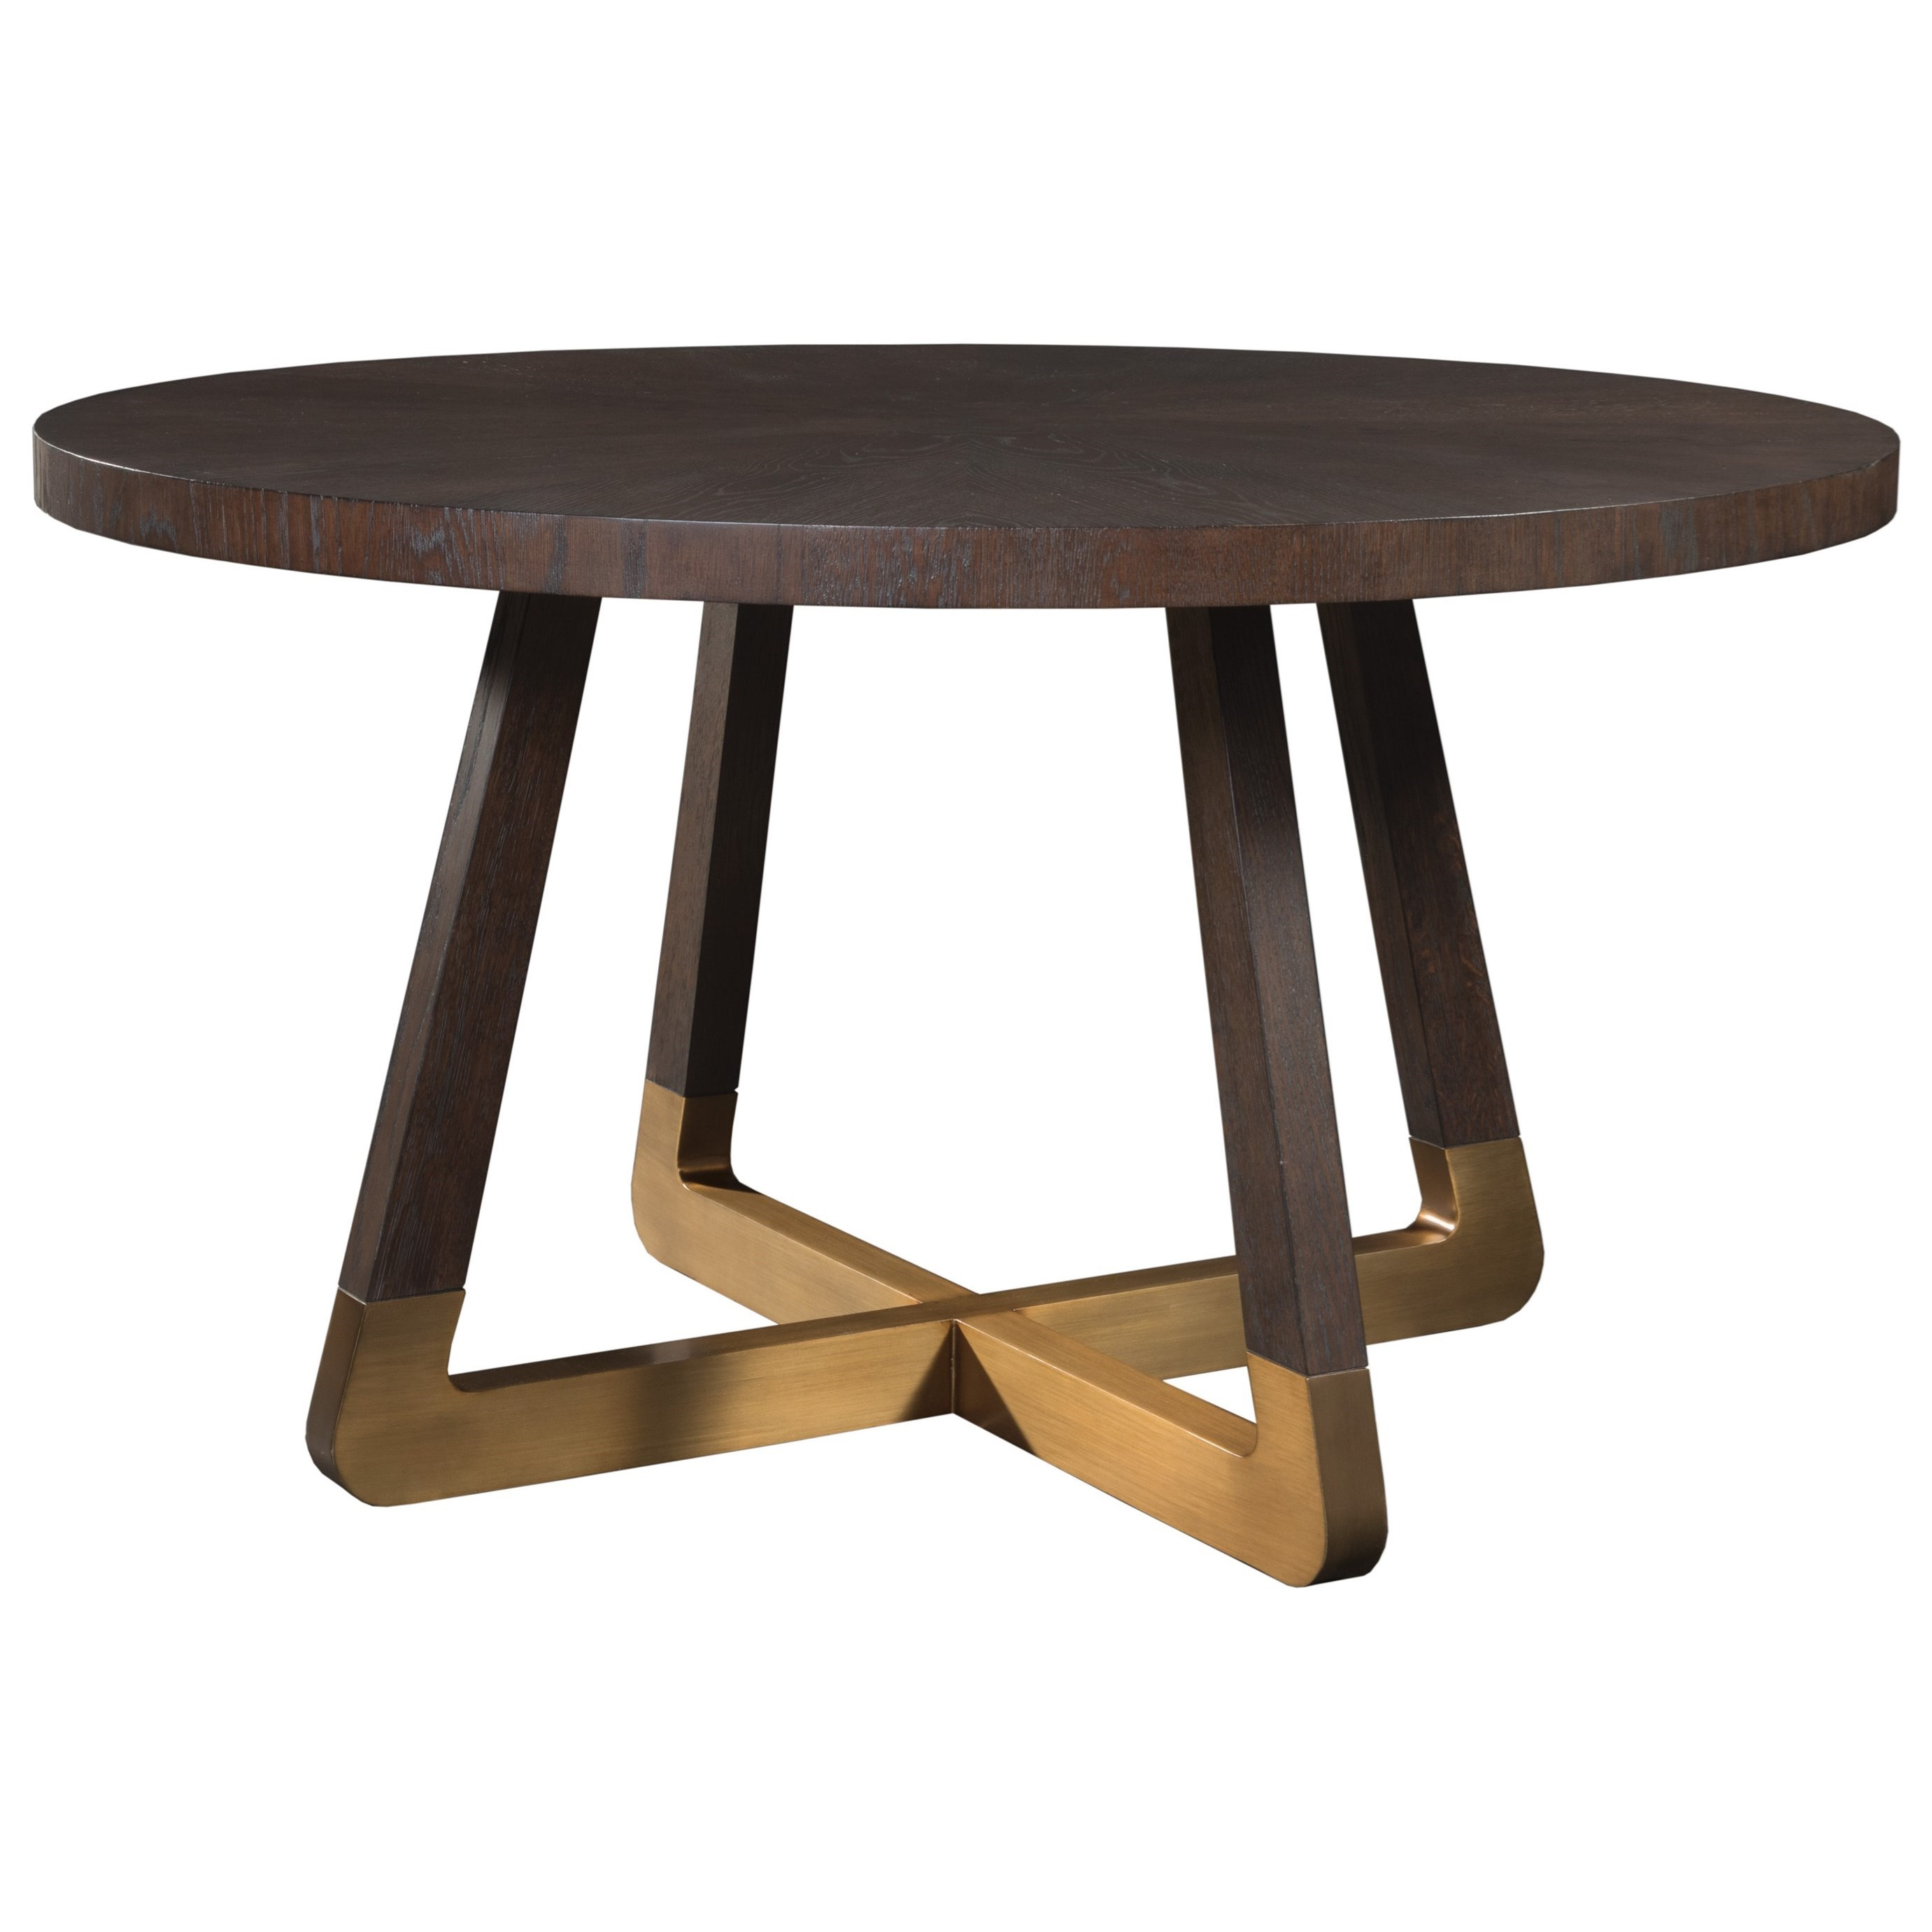 Verbatim Round Dining Table by Artistica at Baer's Furniture